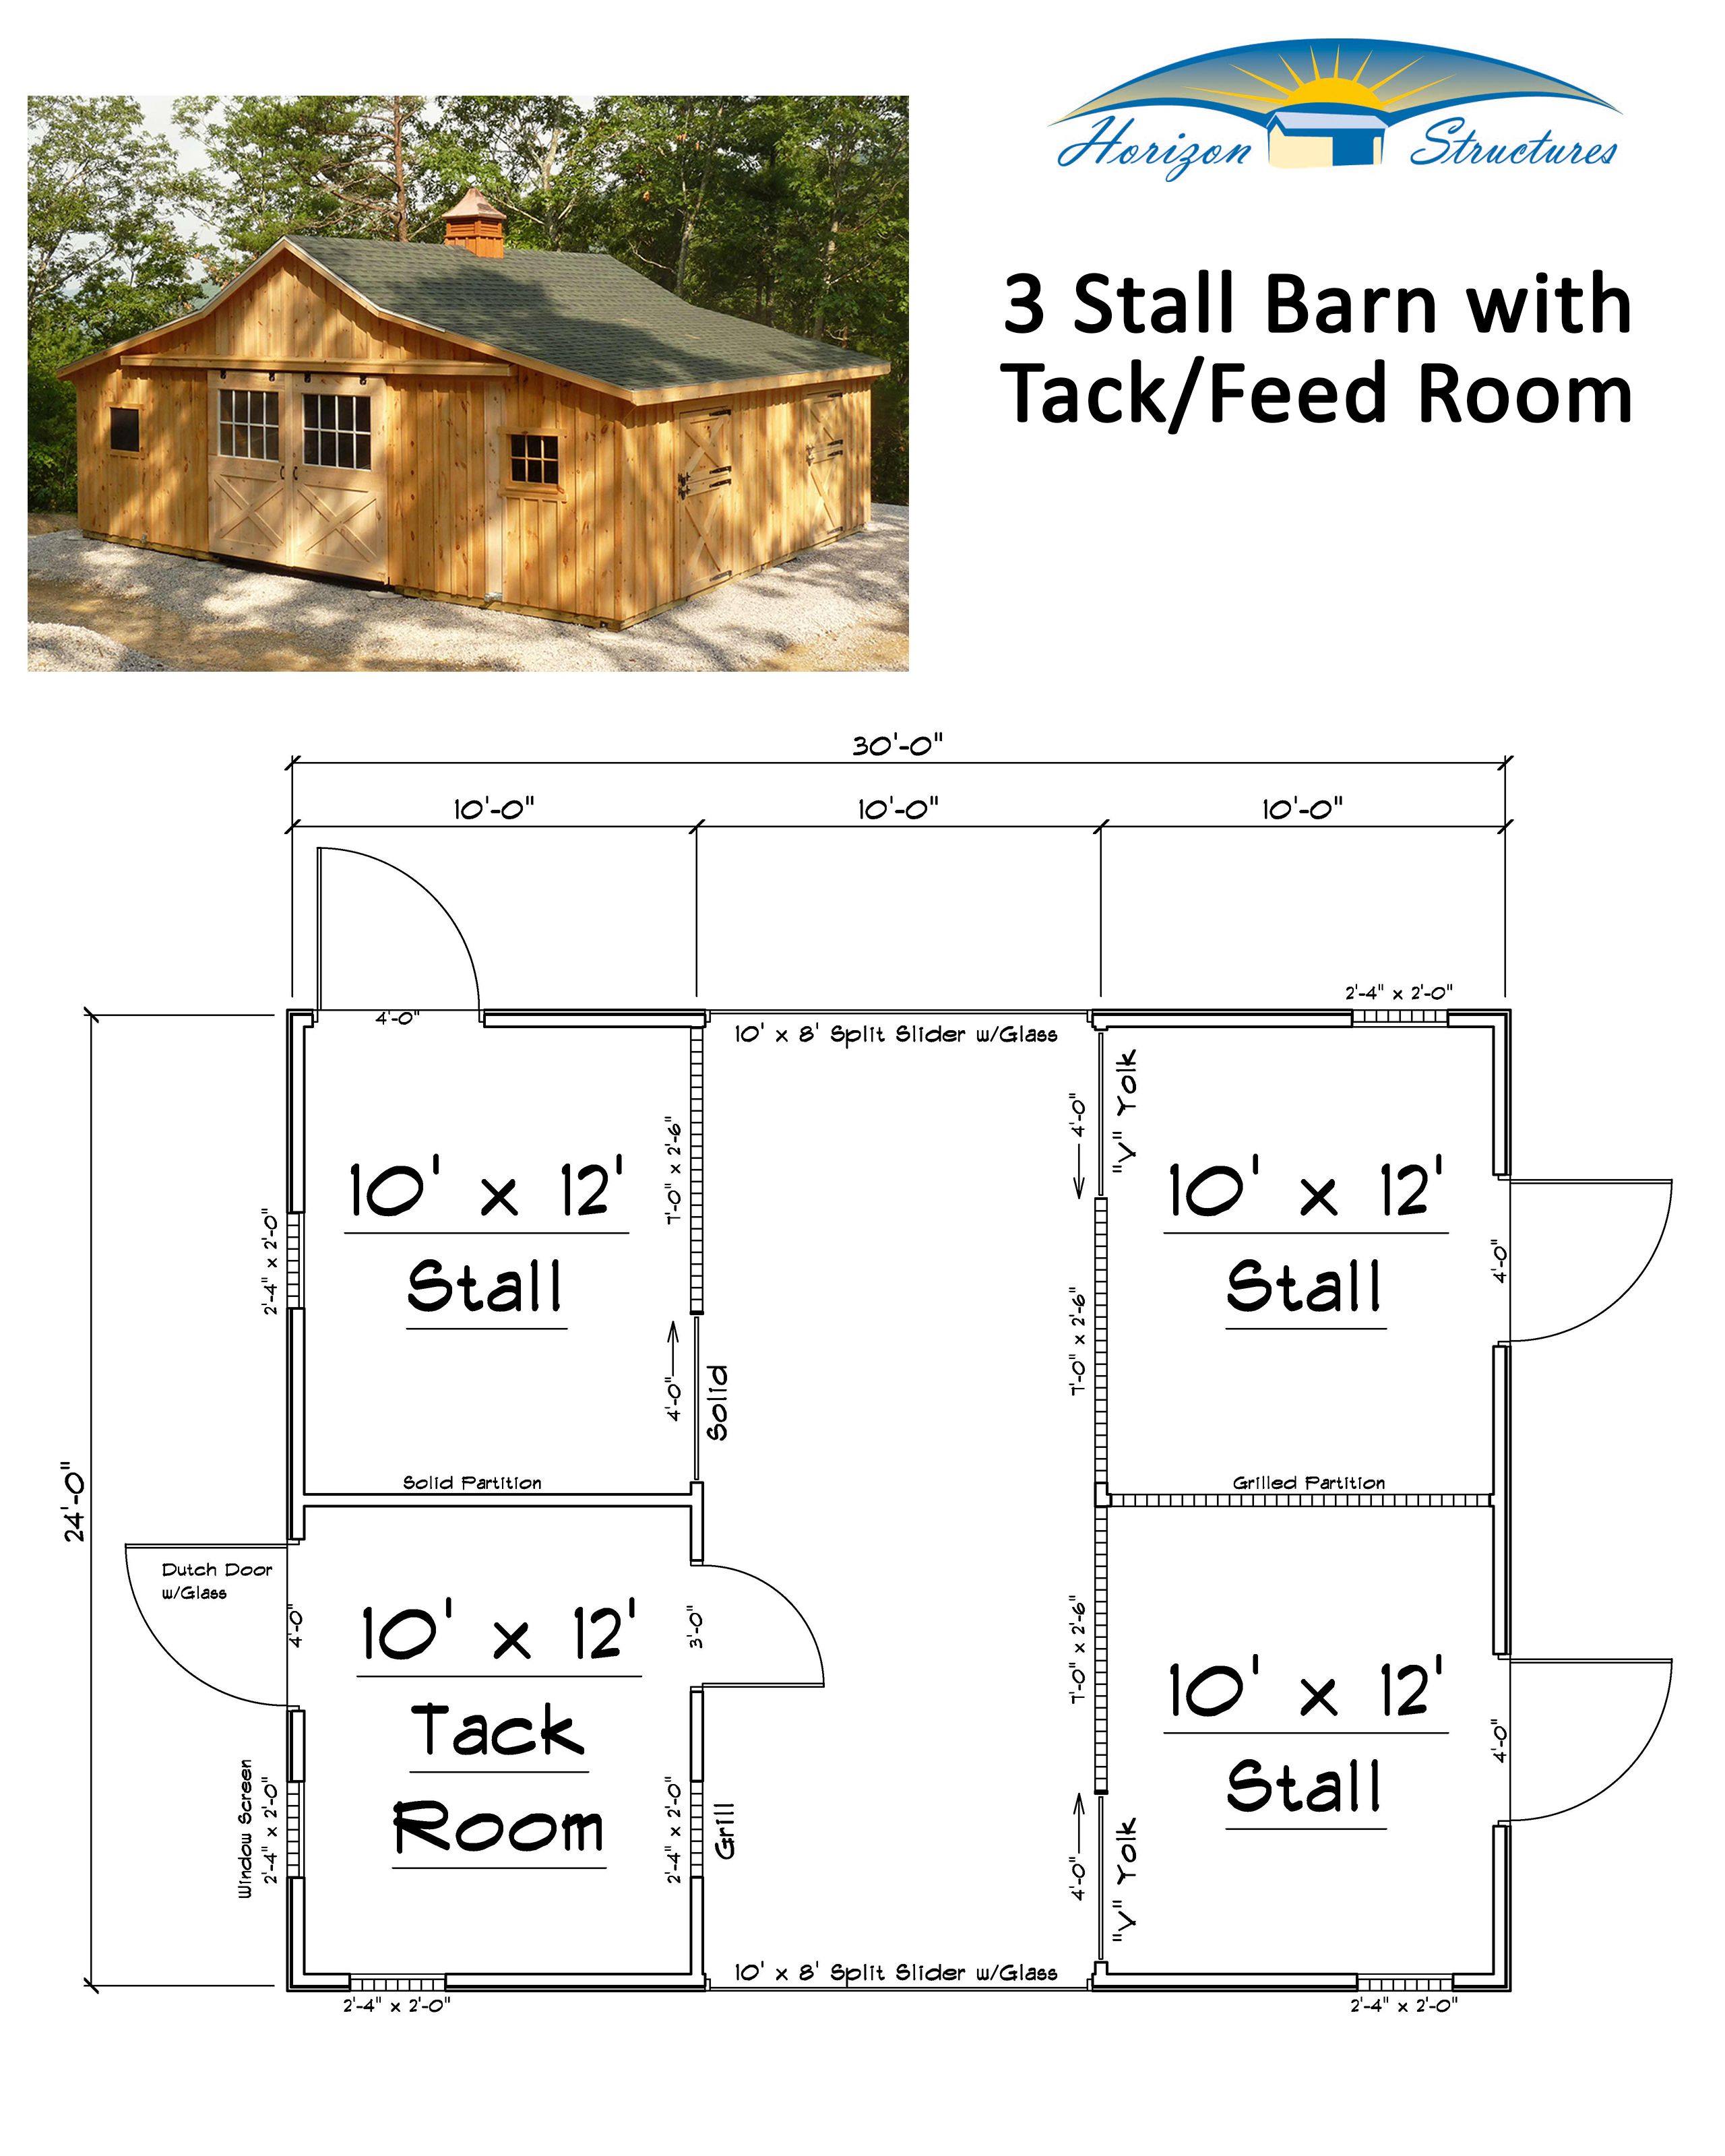 Charming 3 Stall Low Profile Raised Center Aisle Modular Barn Delivered In Two Prefab Sections Our Crew Adds The Small Horse Barns Horse Barns Barn Plans